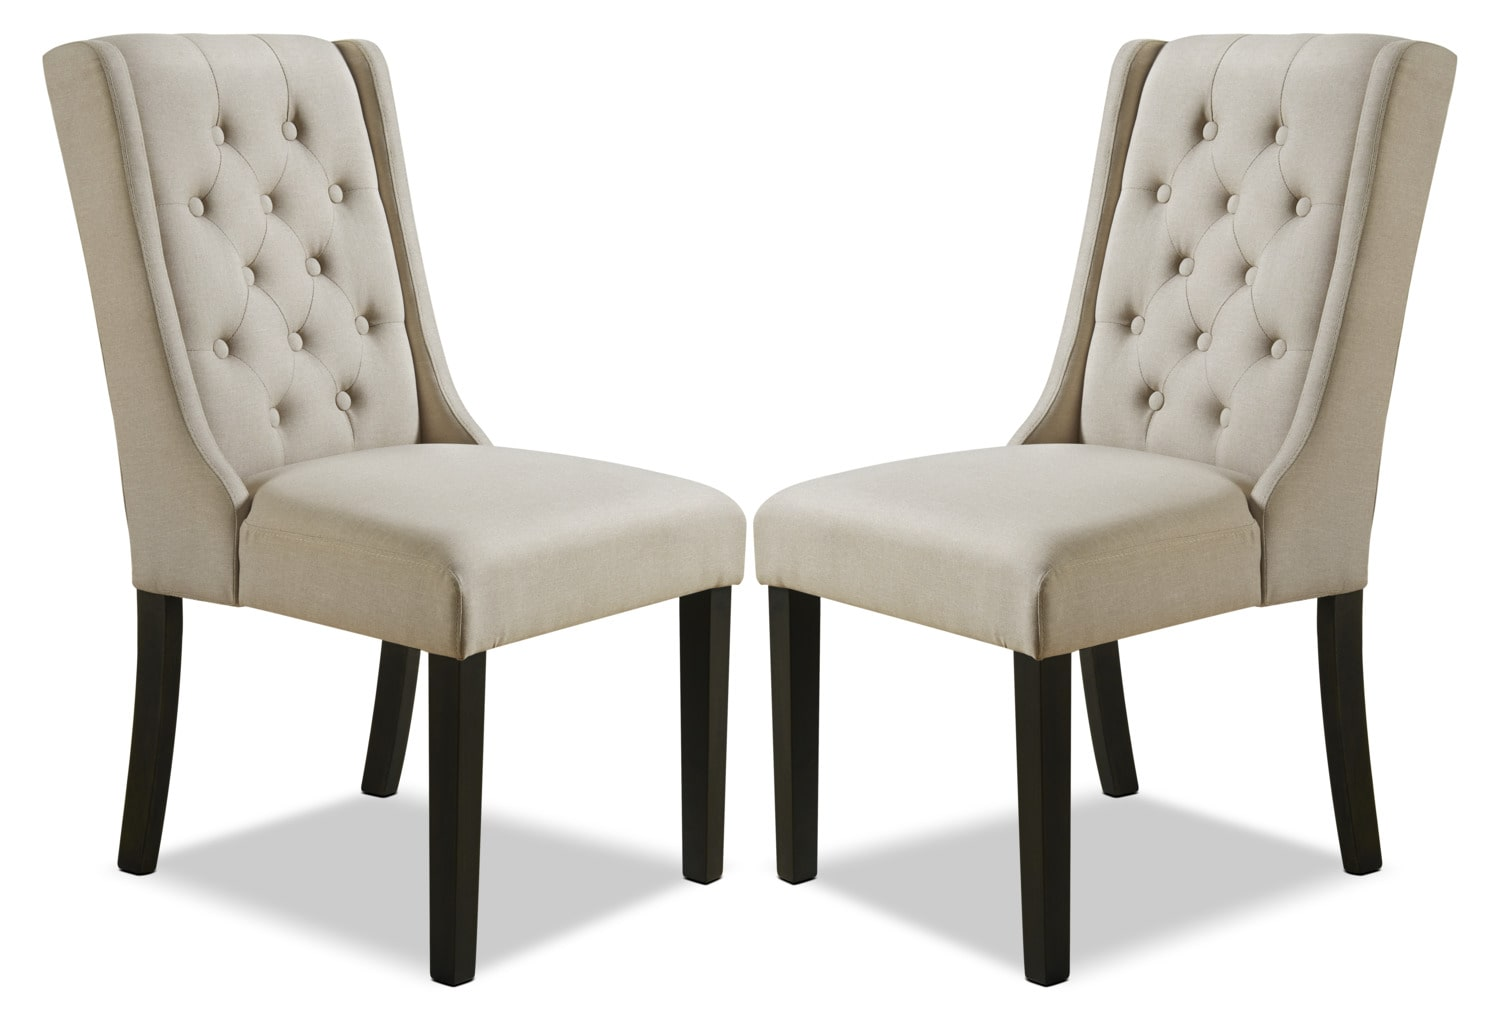 York Wingback Dining Chair, Set of 2 – Beige